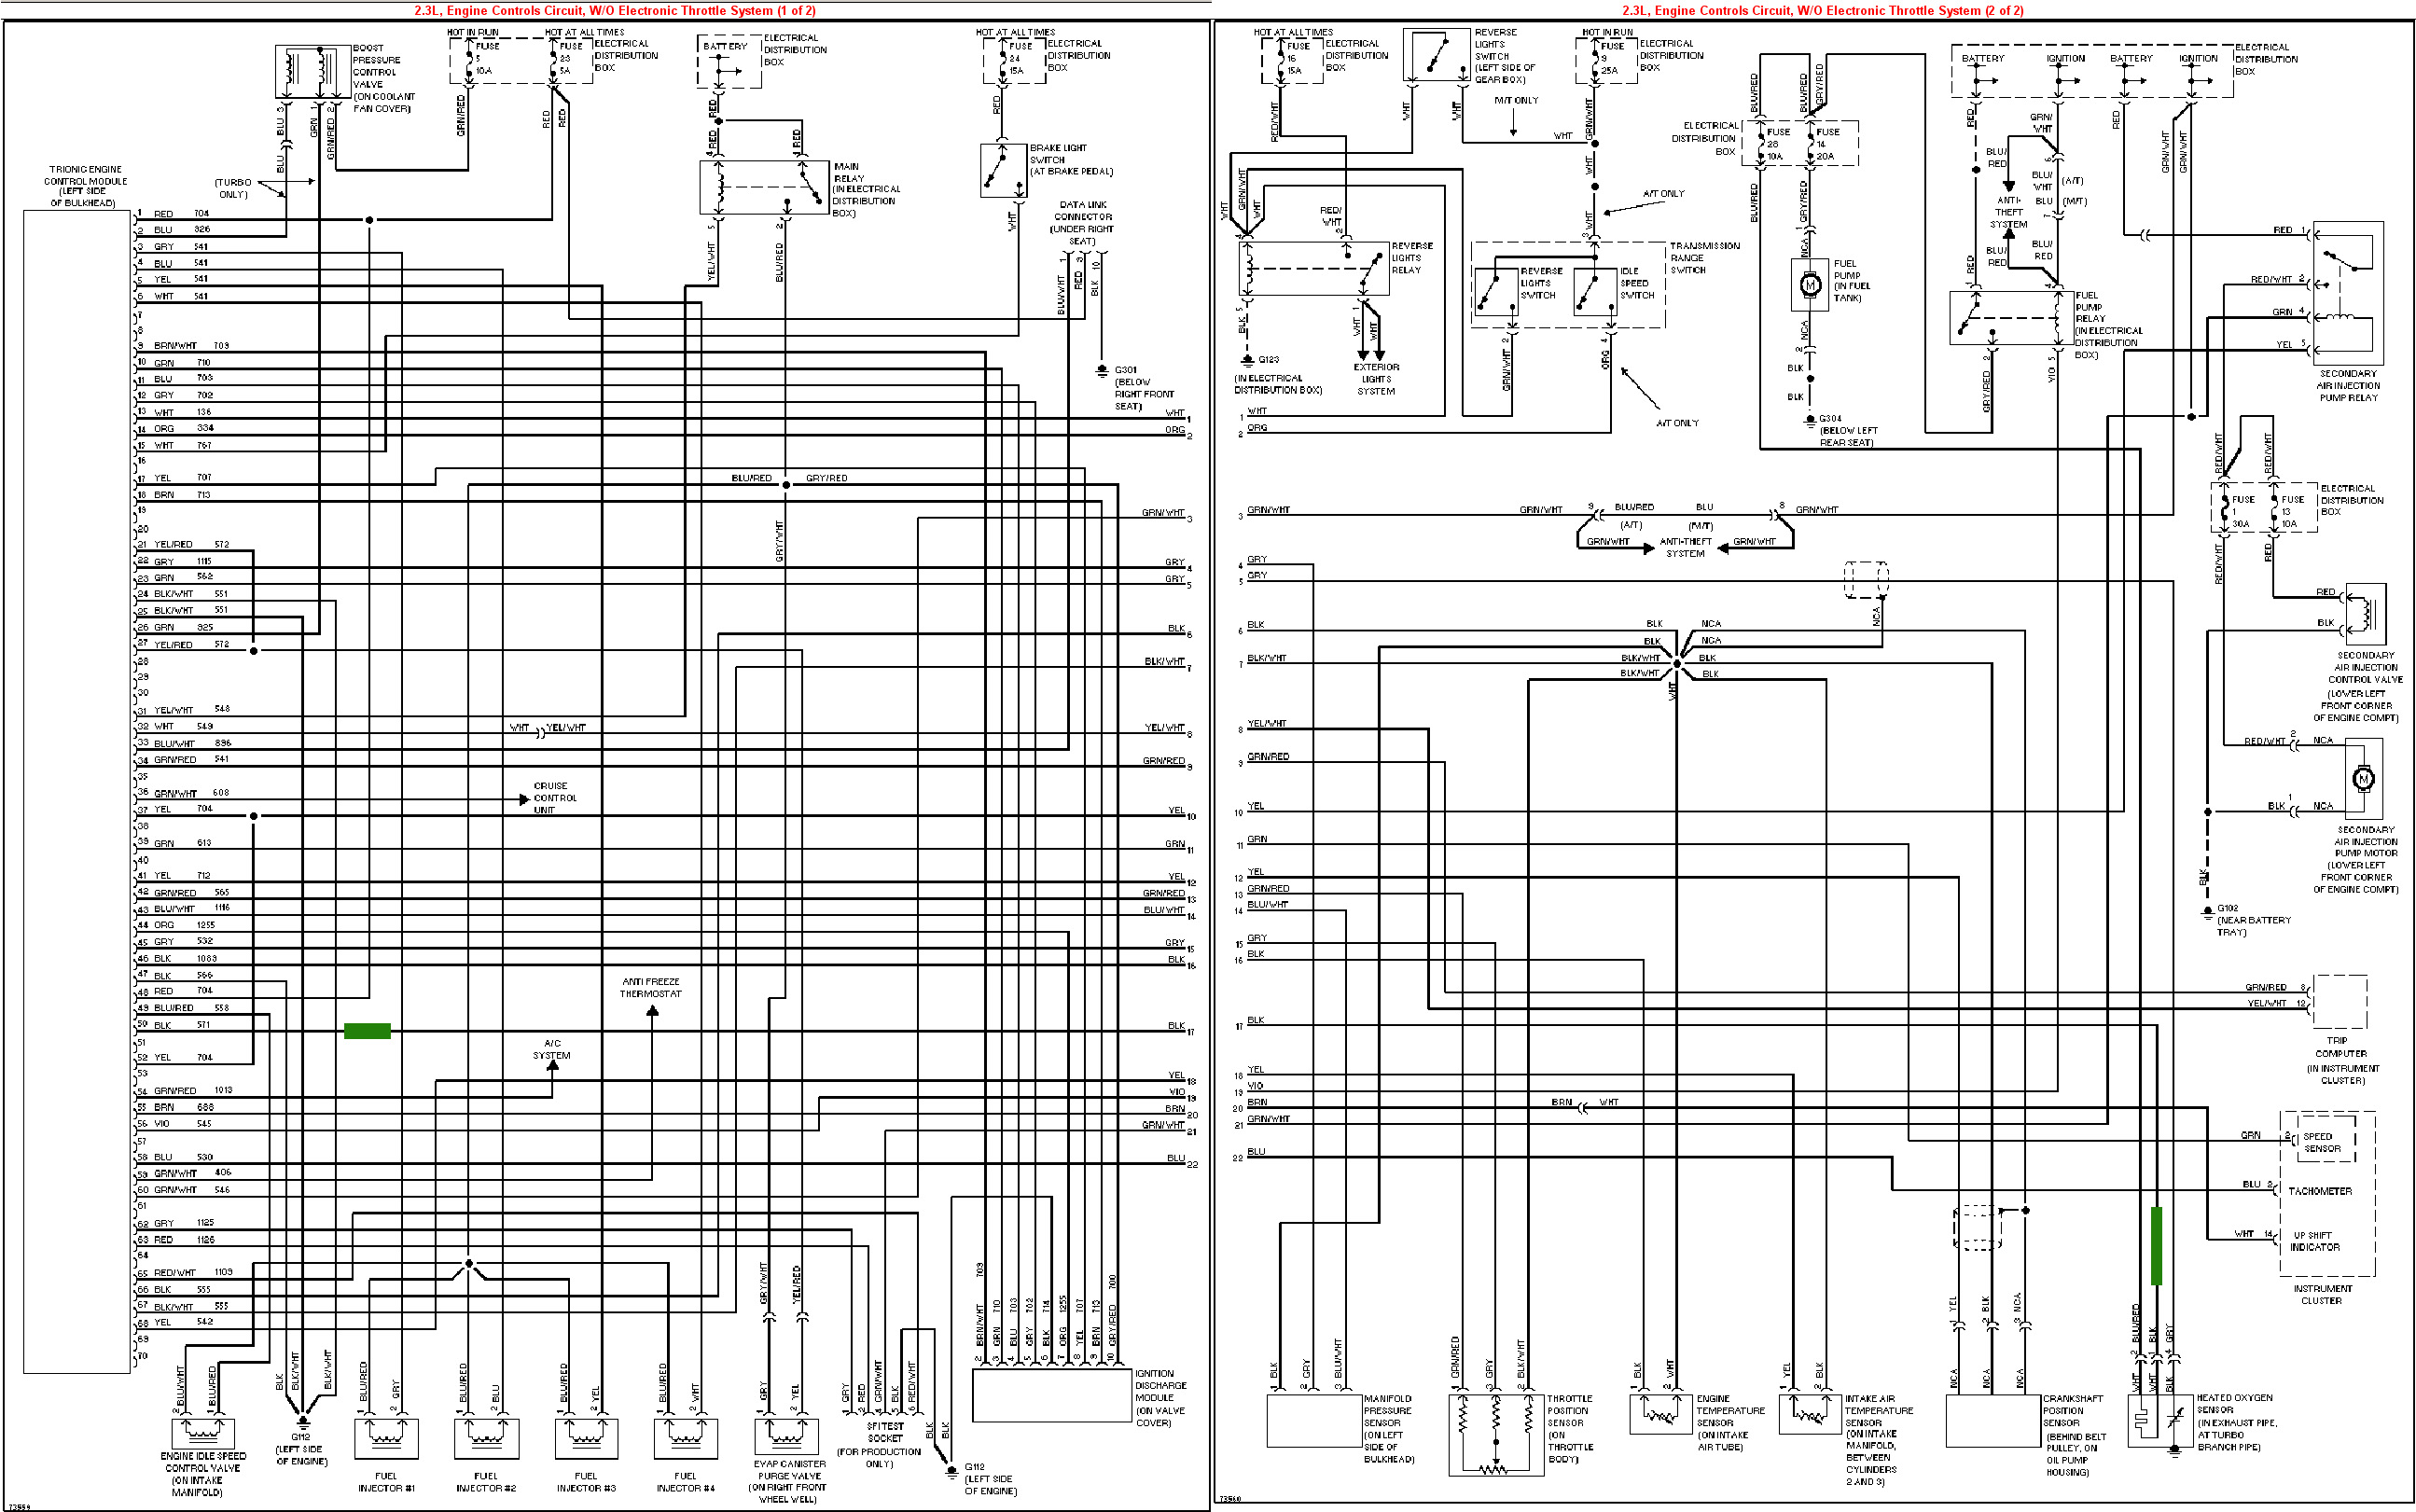 Wiring Diagram View Diagram Saab 9000 Saab 9000 Wiring Diagram